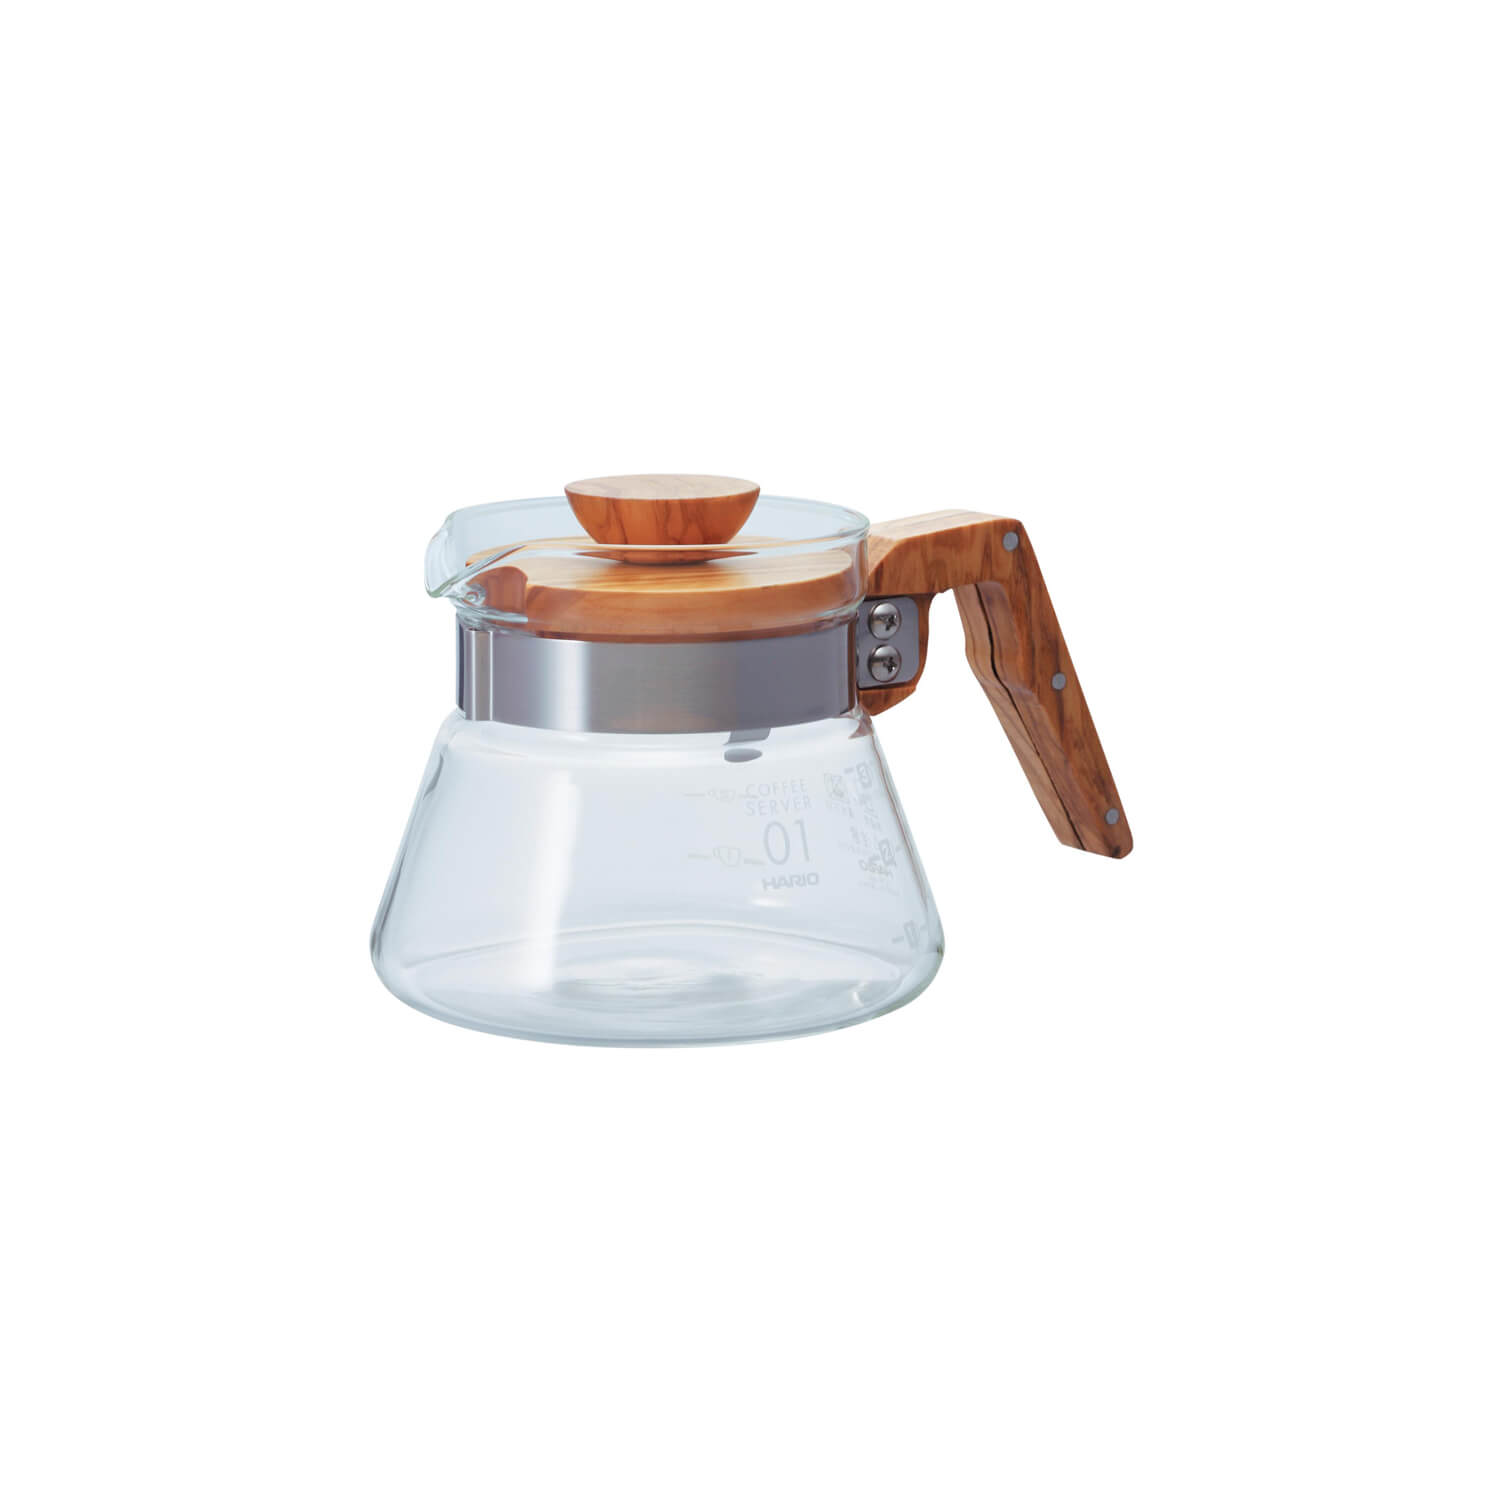 Hario - Coffee Server - Olive Wood - 400 ml